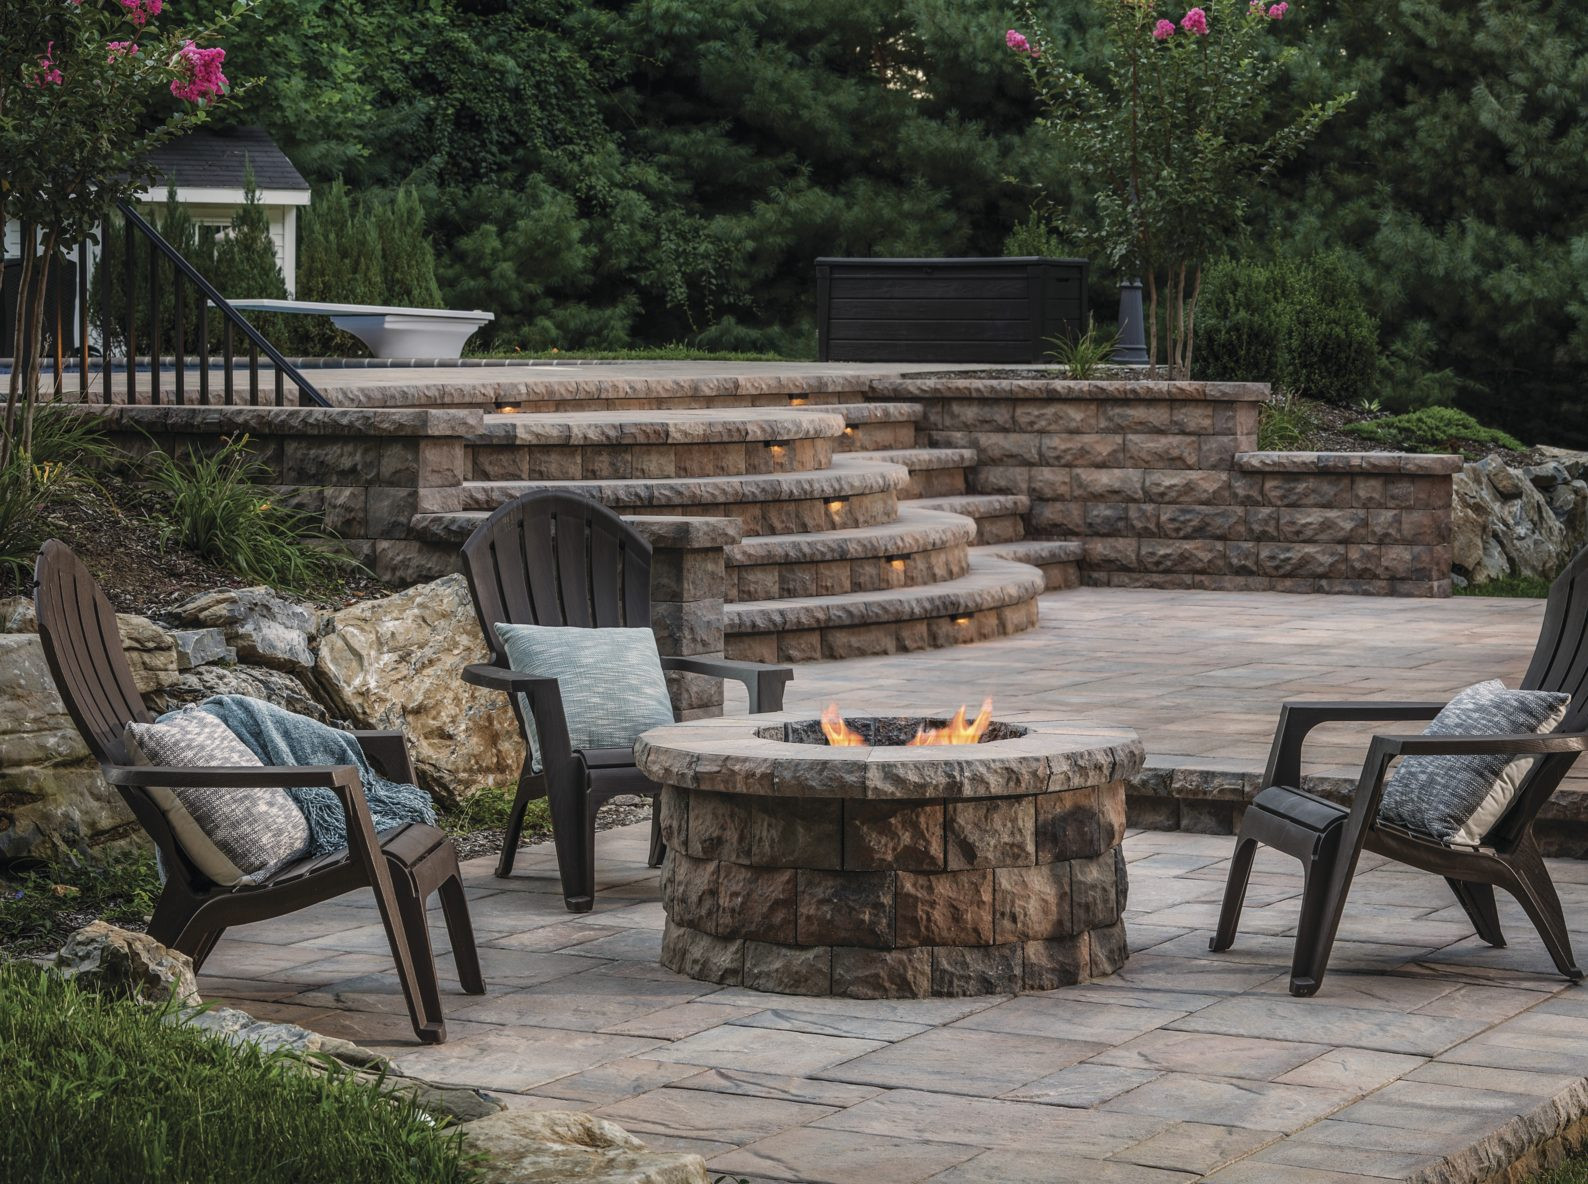 Patio With Fire Pit Ideas  Turn Up the Heat with These Cozy Fire Pit Patio Design